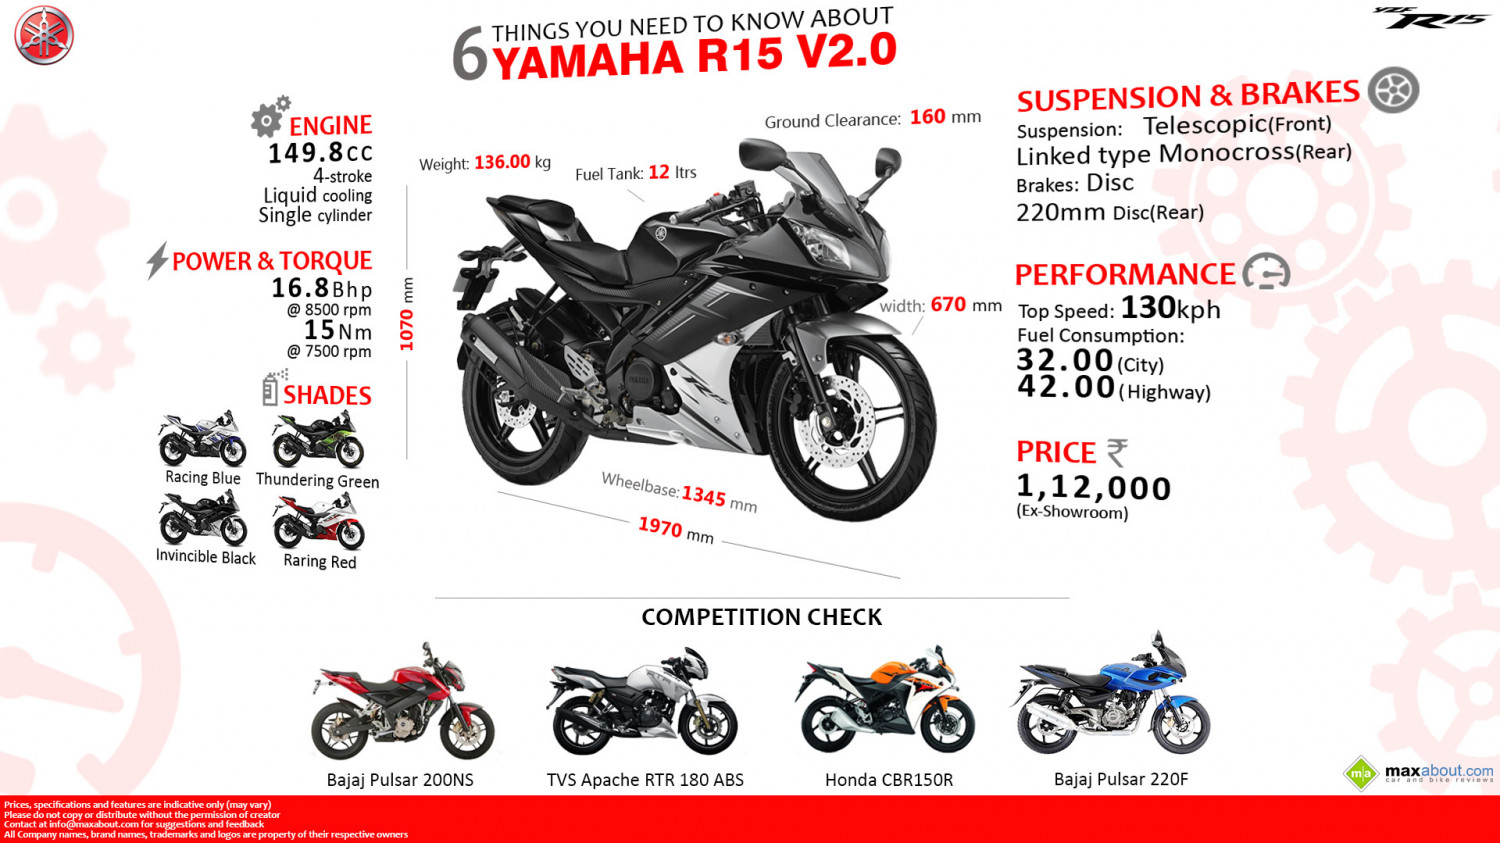 6 Things You Need to Know About Yamaha R15 V2.0 Infographic